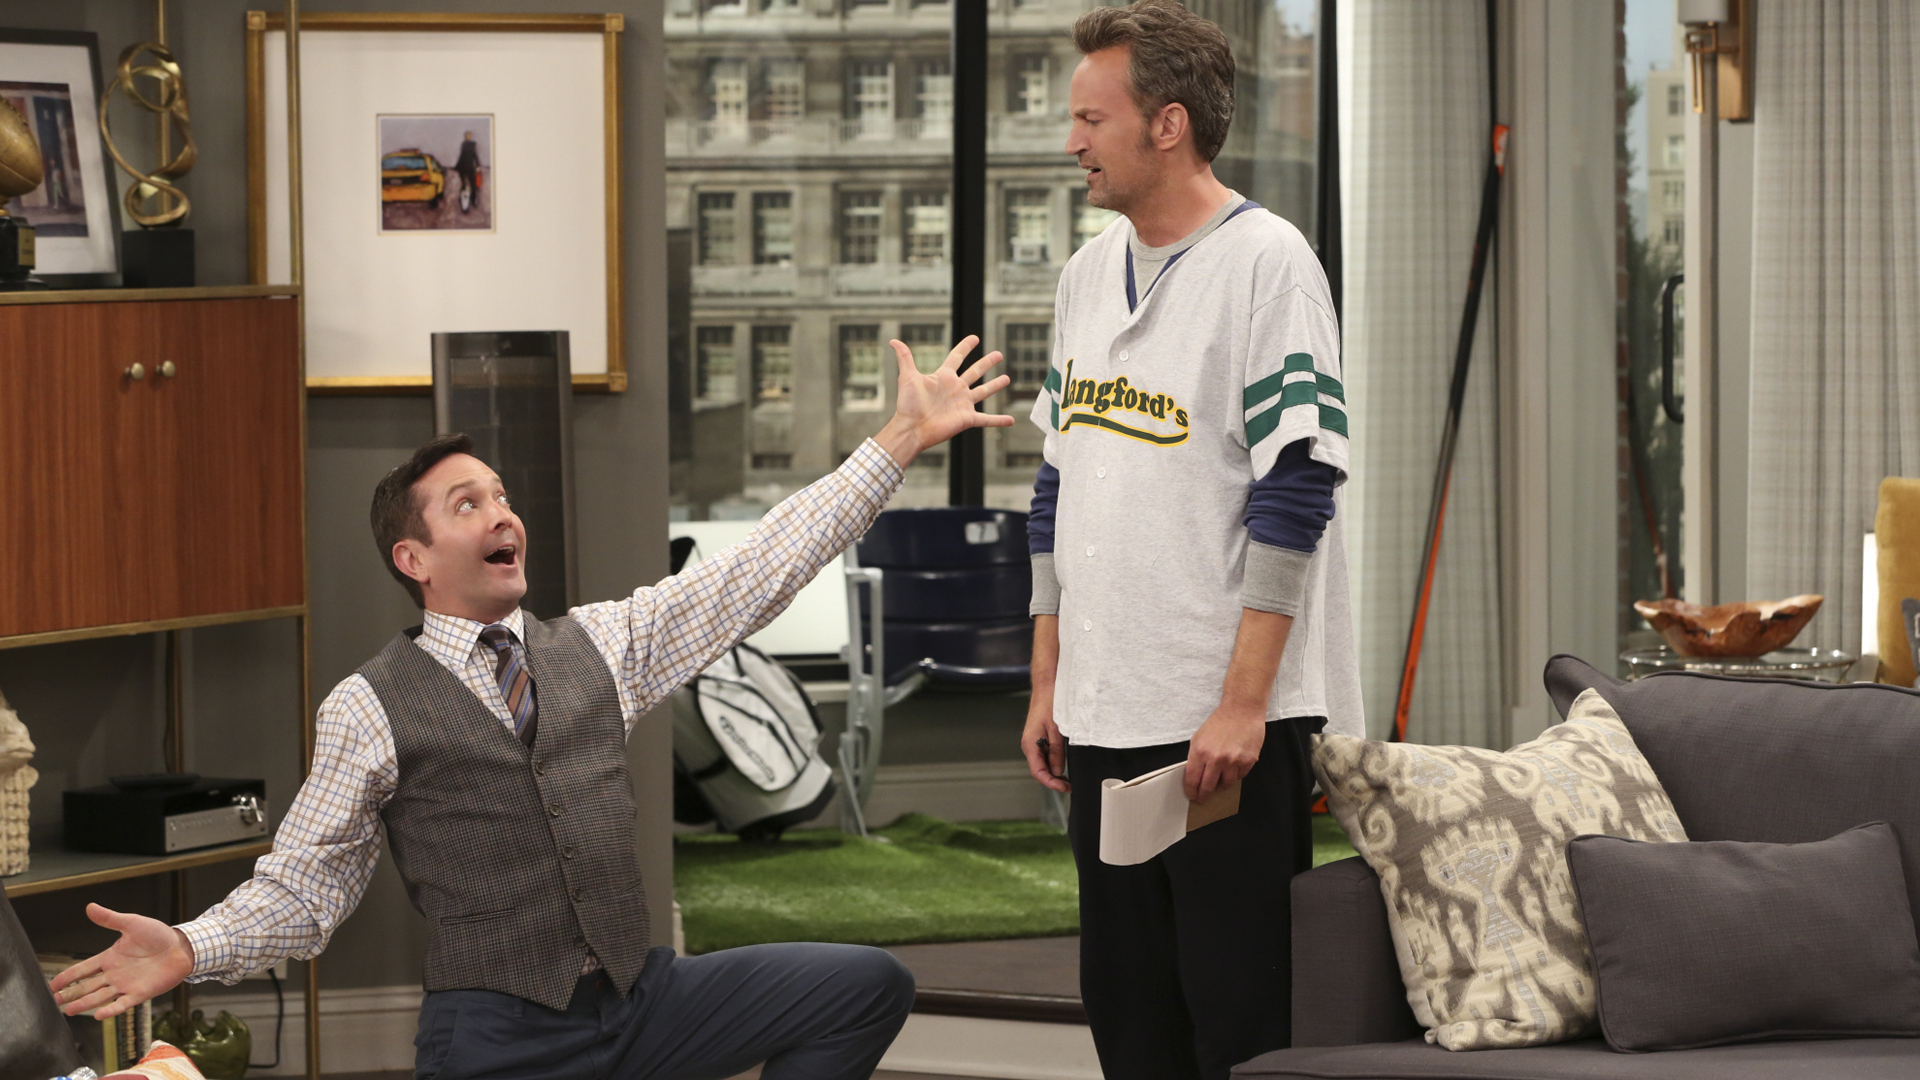 The Odd Couple Season 4 date release